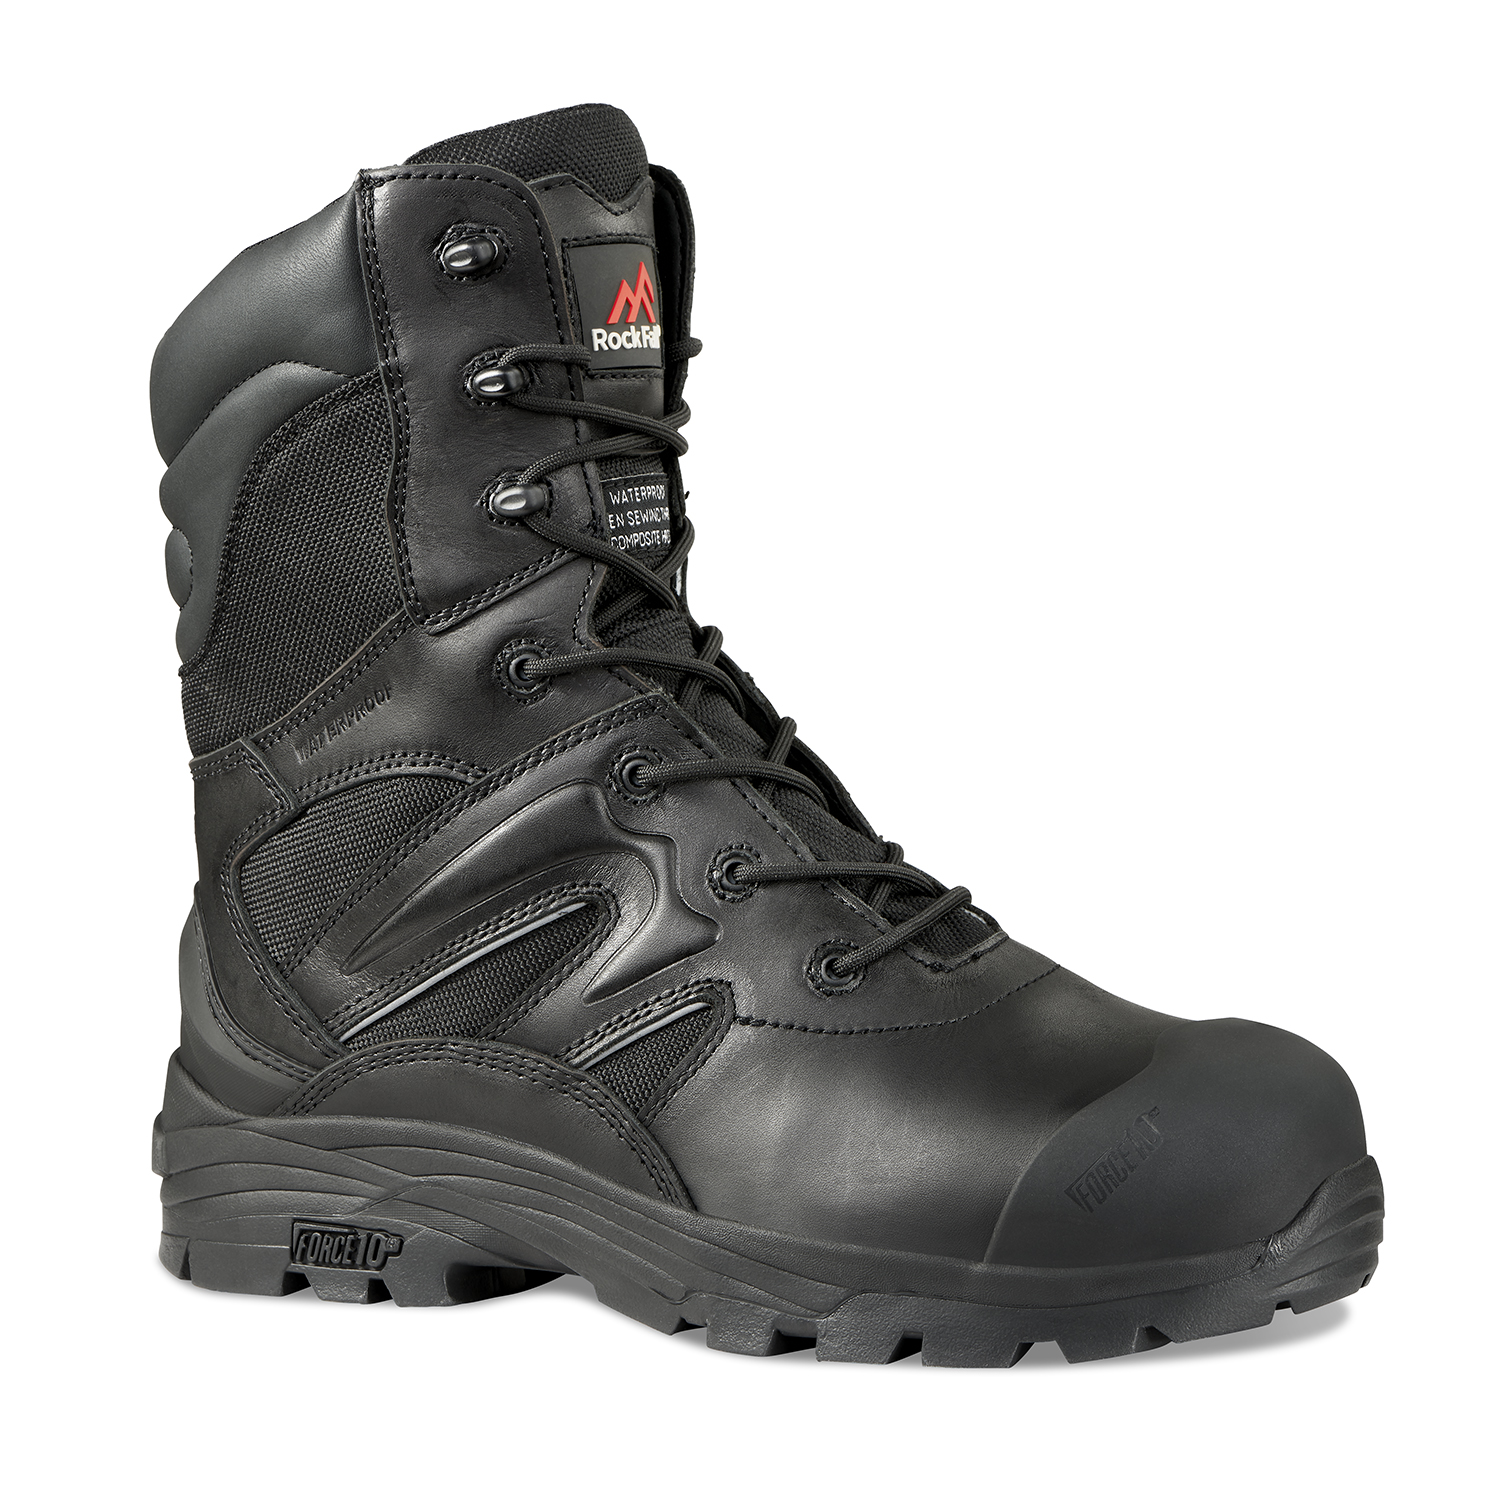 Rockfall RF4500 Titanium Safety Boot